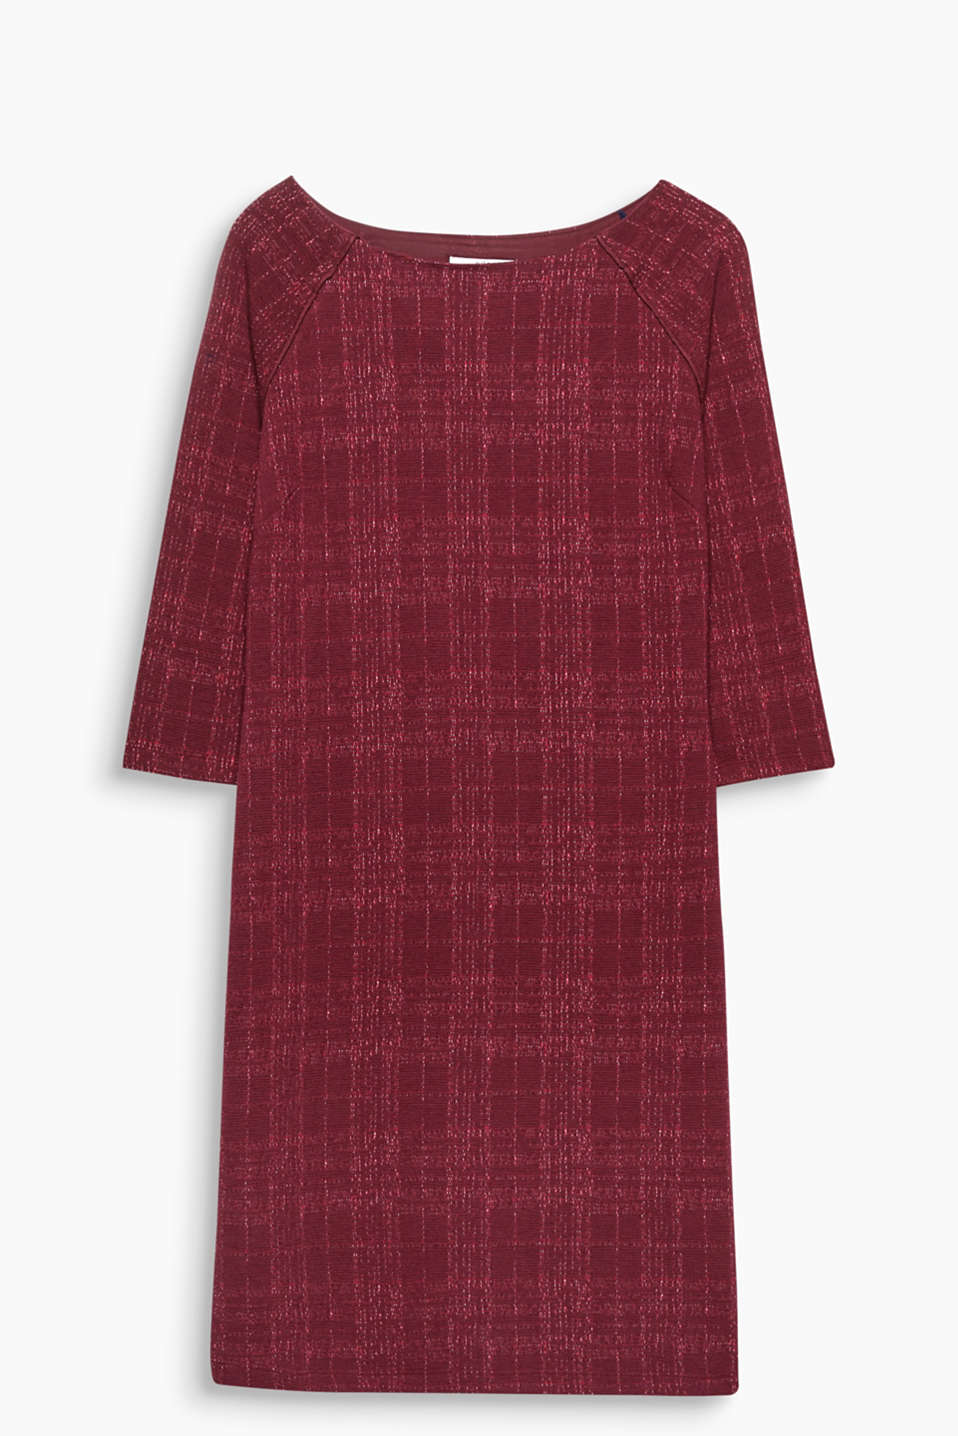 Body-hugging and so comfortable: sheath dress in thick stretch jersey with a trendy check texture